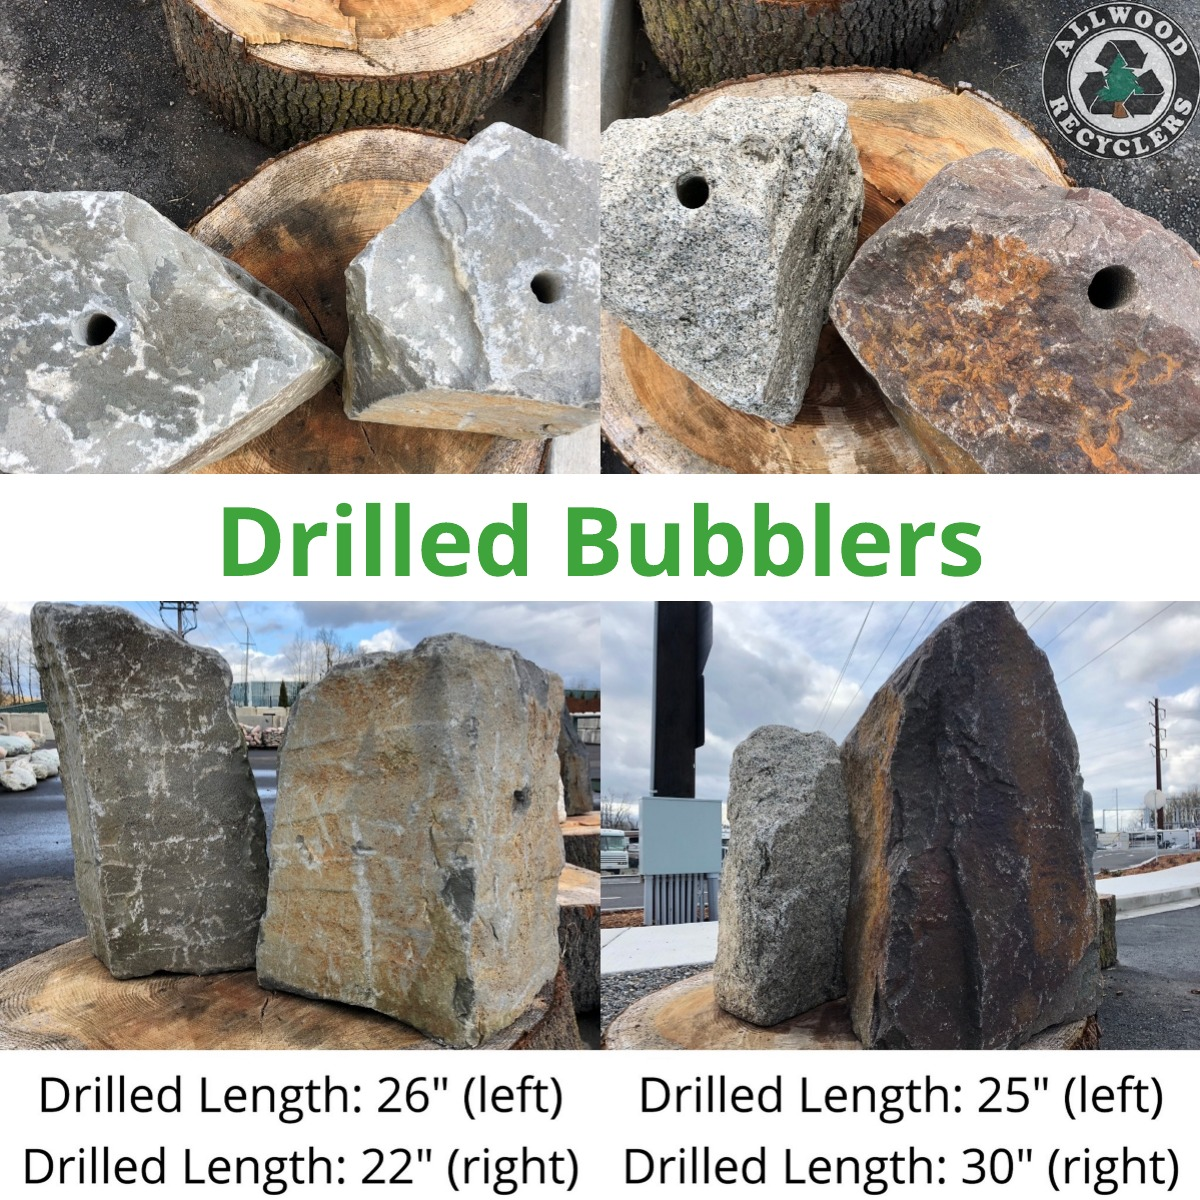 Drilled Bubblers